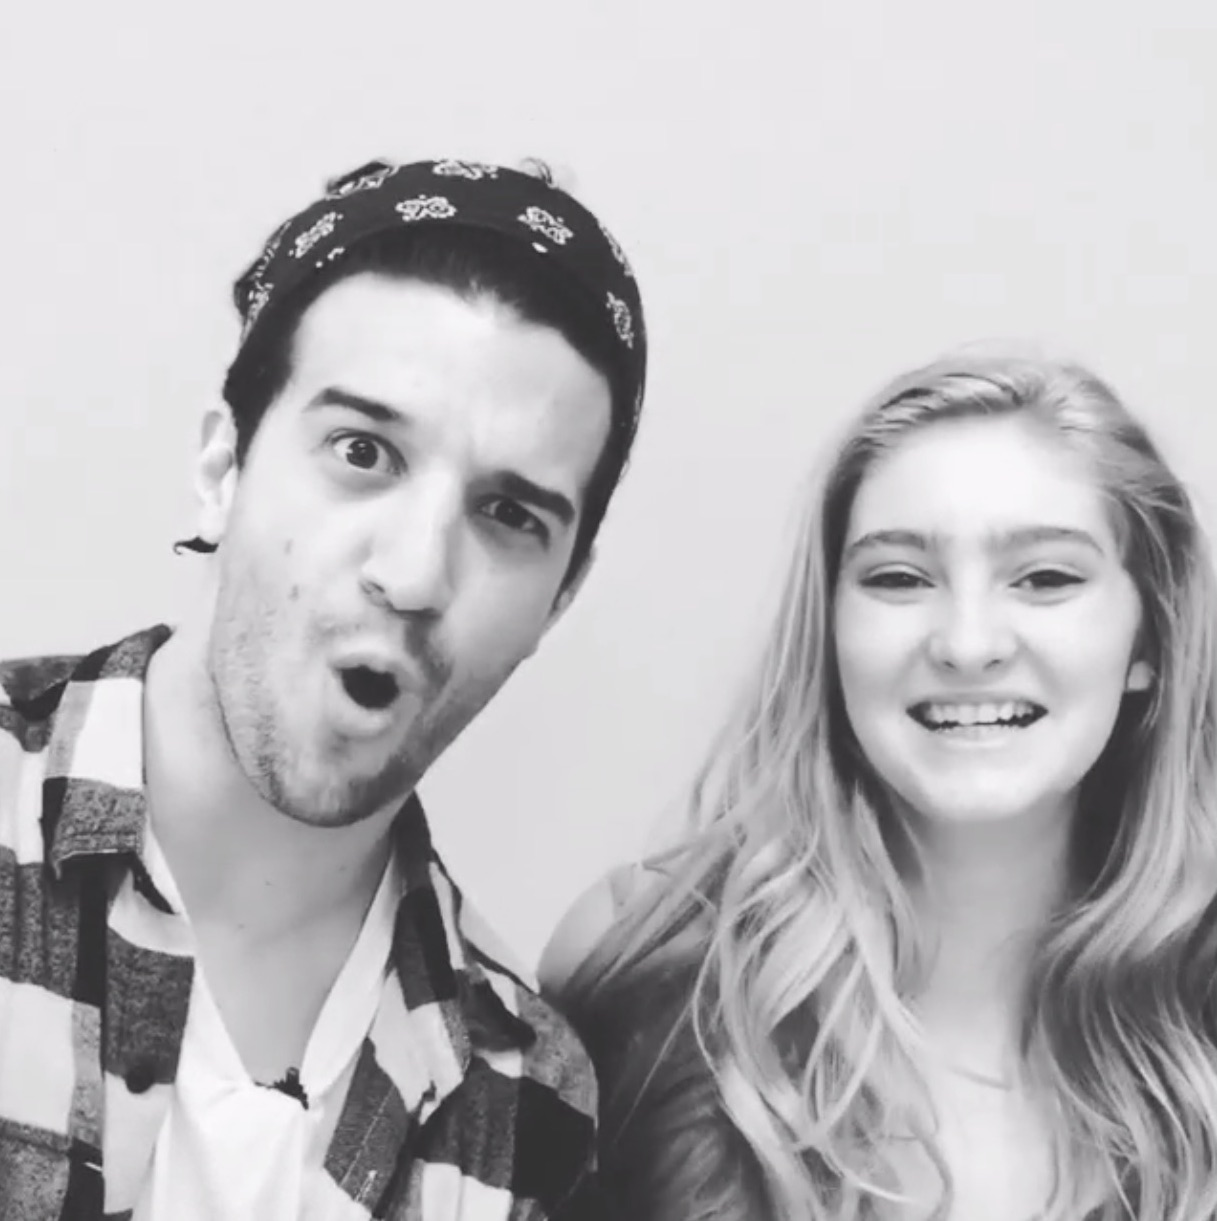 Willow Shields and Mark Ballas on Instagram